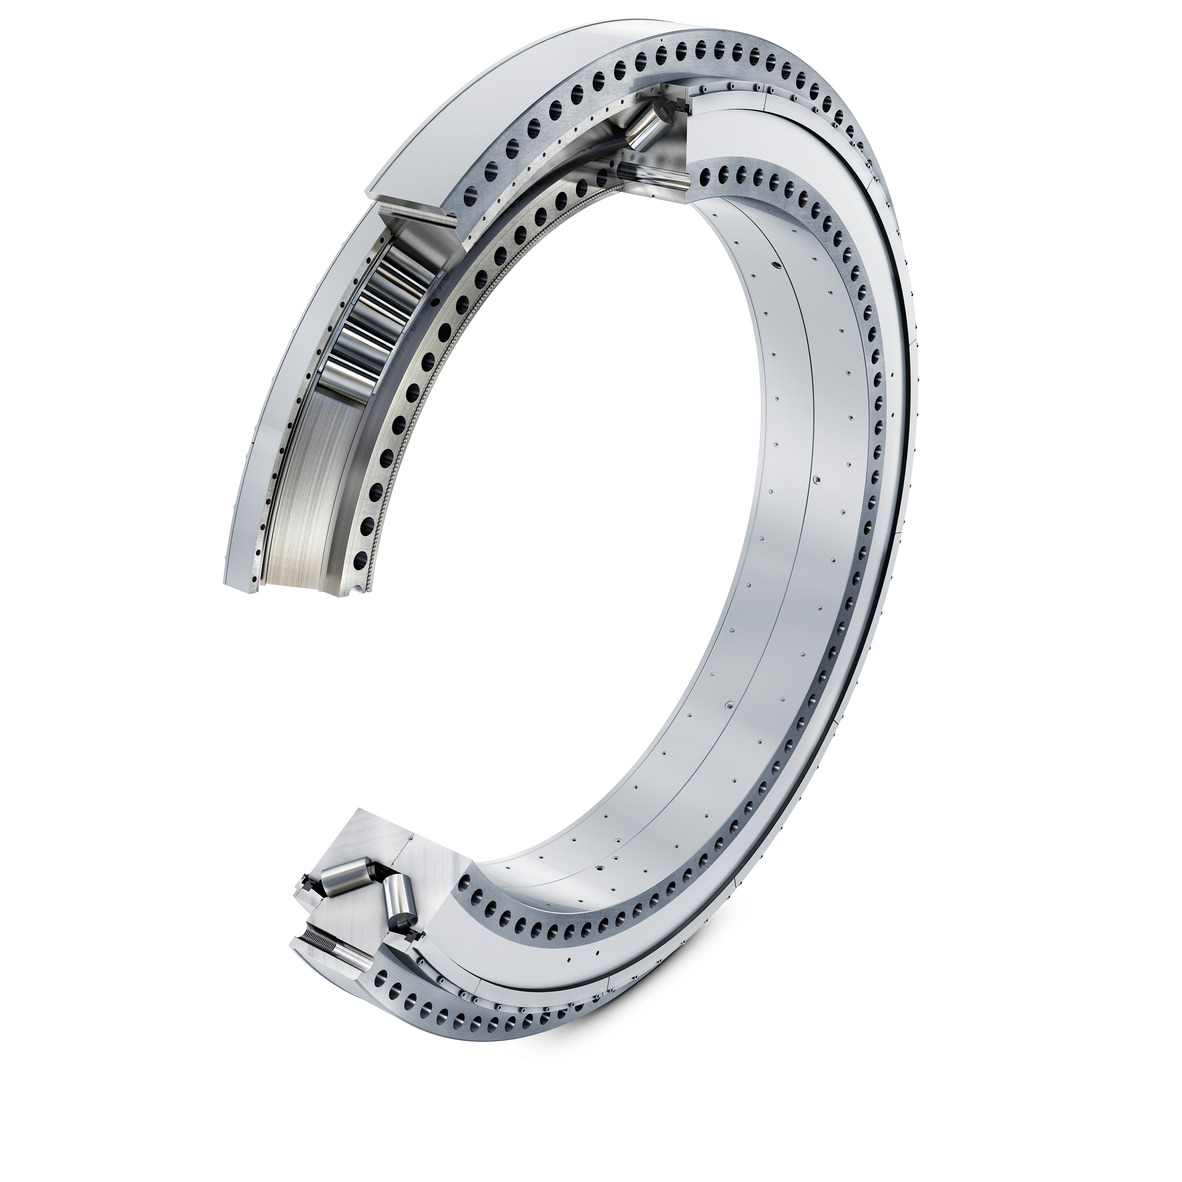 Flange mounted tapered roller bearing unit